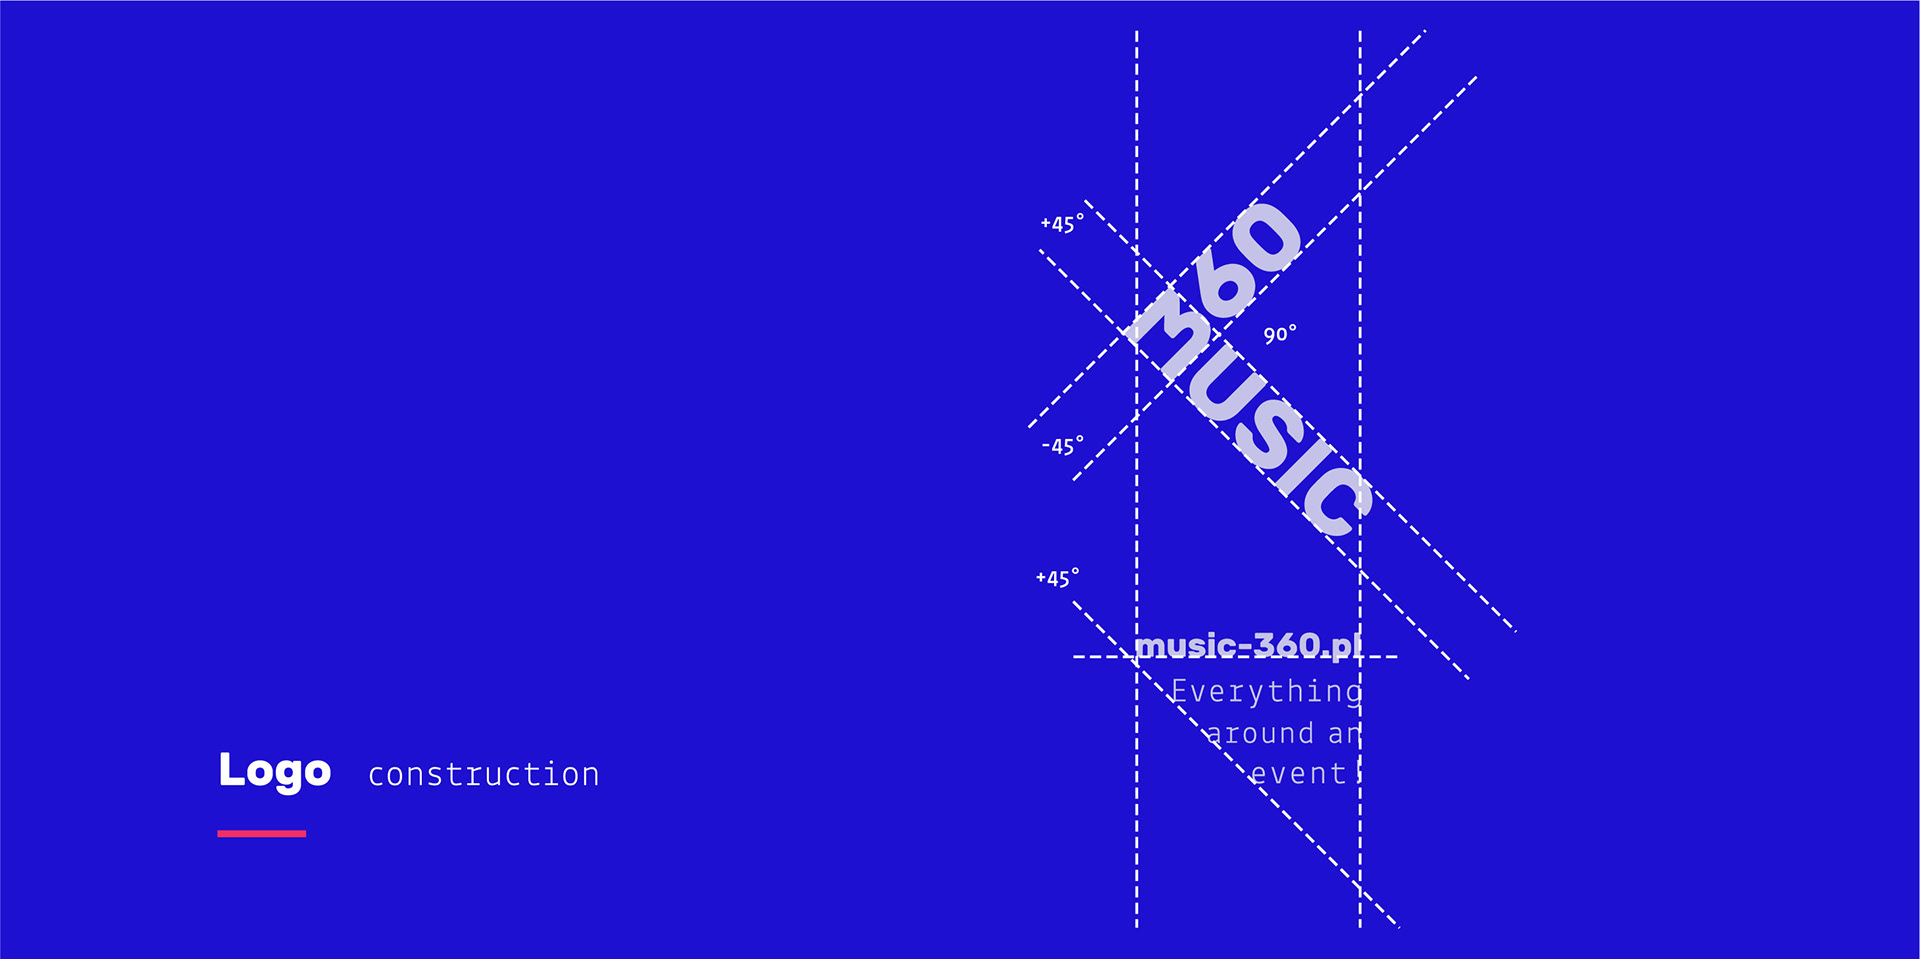 Music 360 project